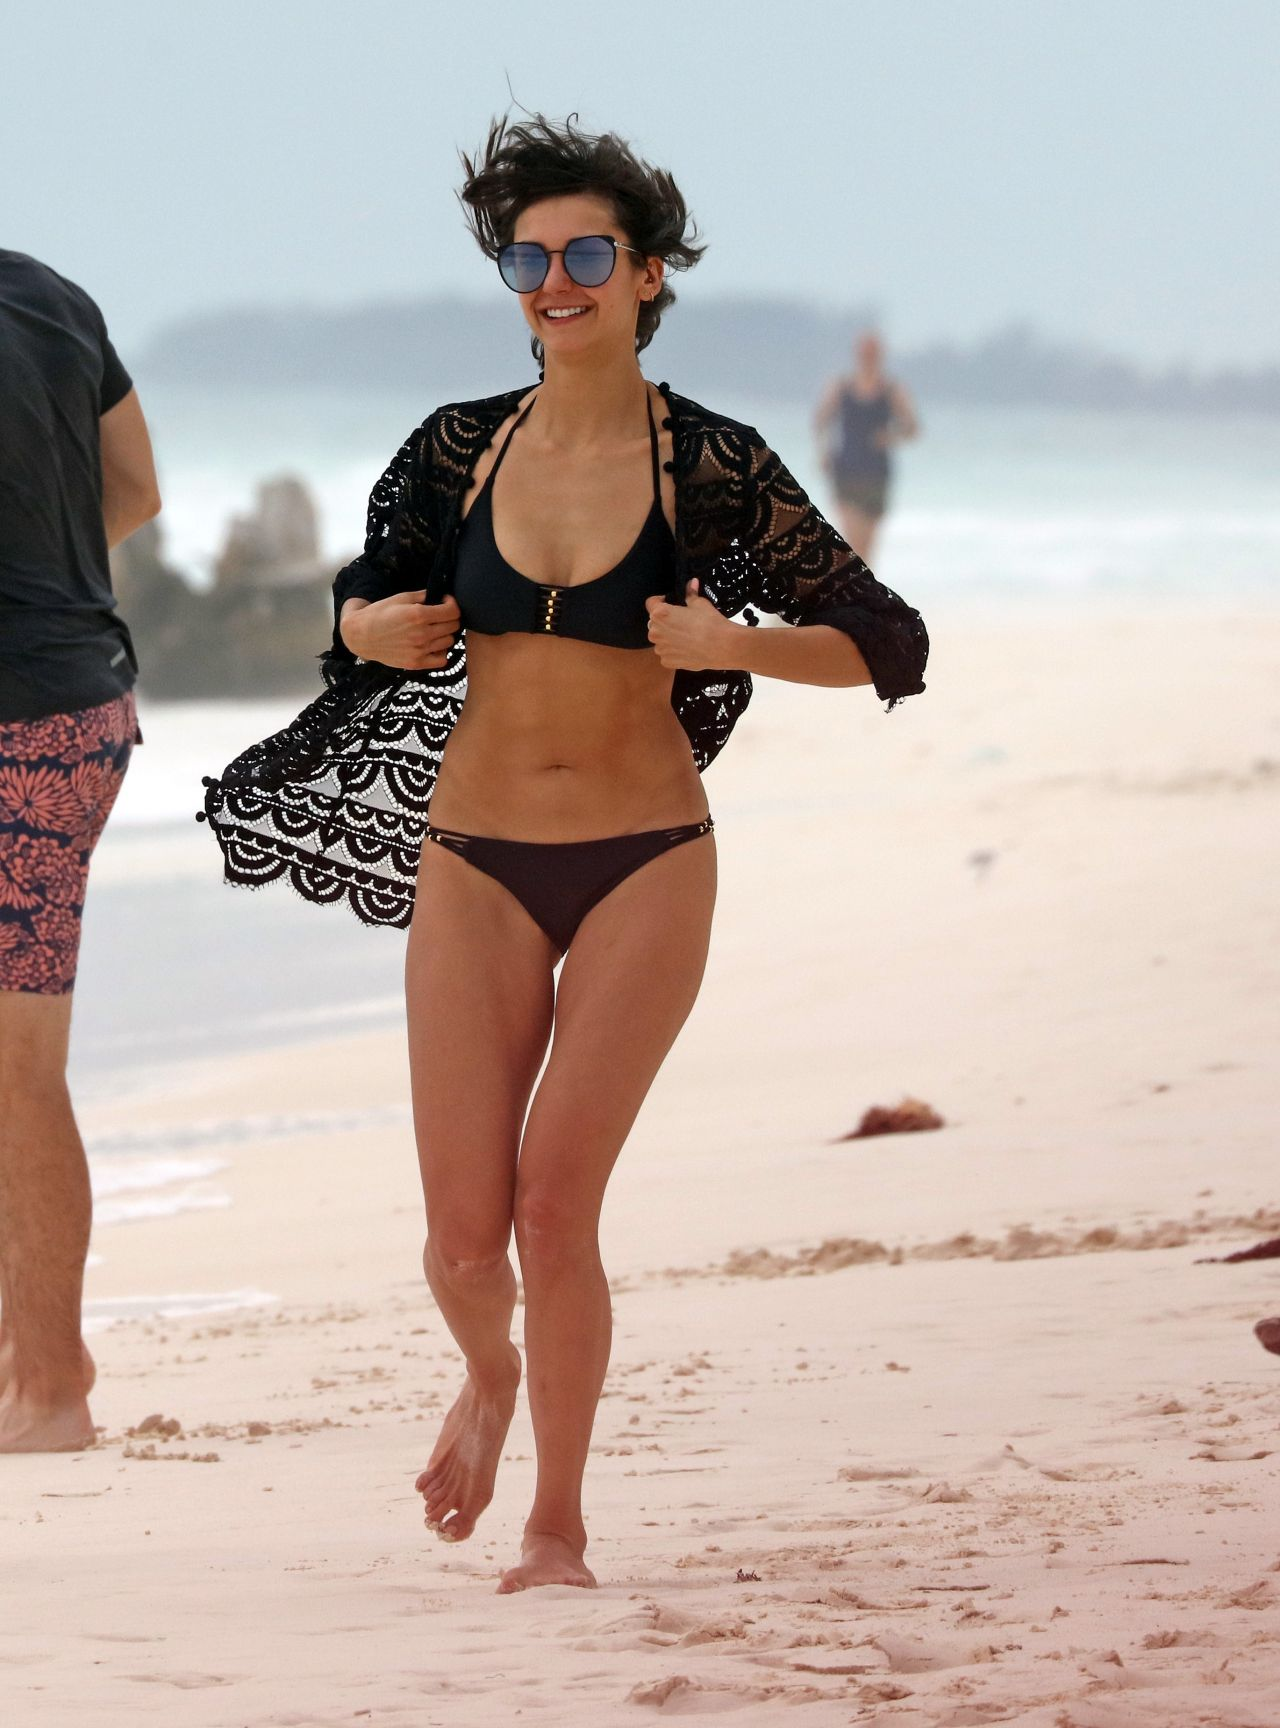 Not Nina dobrev bikini with